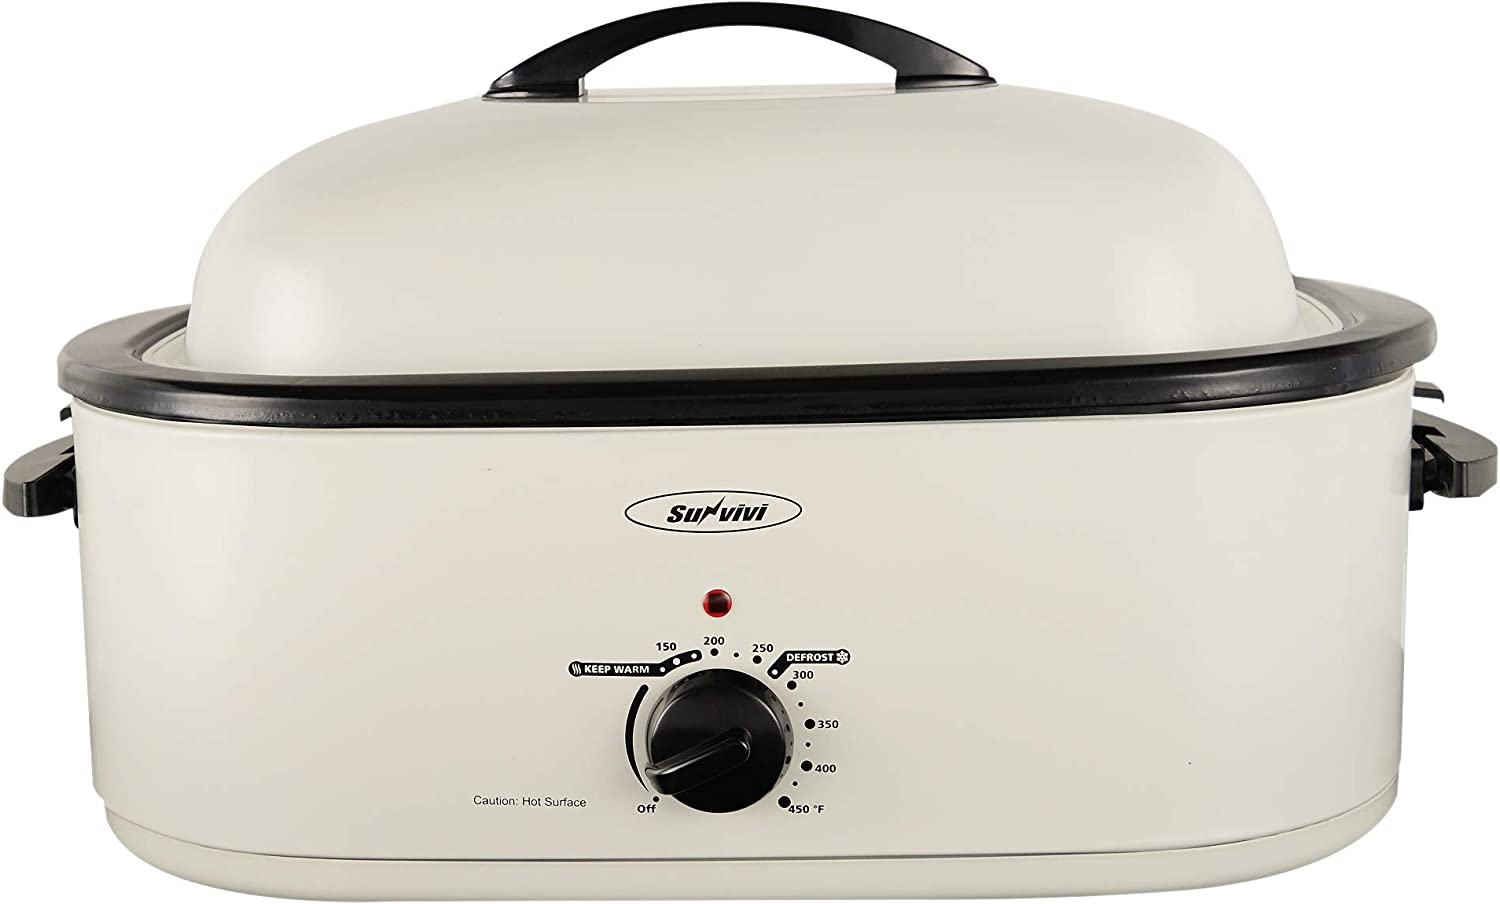 Roaster Oven 18 Quart with Self-Basting Lid Adjustable Temperature Control Powerful 1450W Stainless Steel Roaster Oven White Turkey Roaster Oven with Removable Pan and Rack Roaster Oven Electric